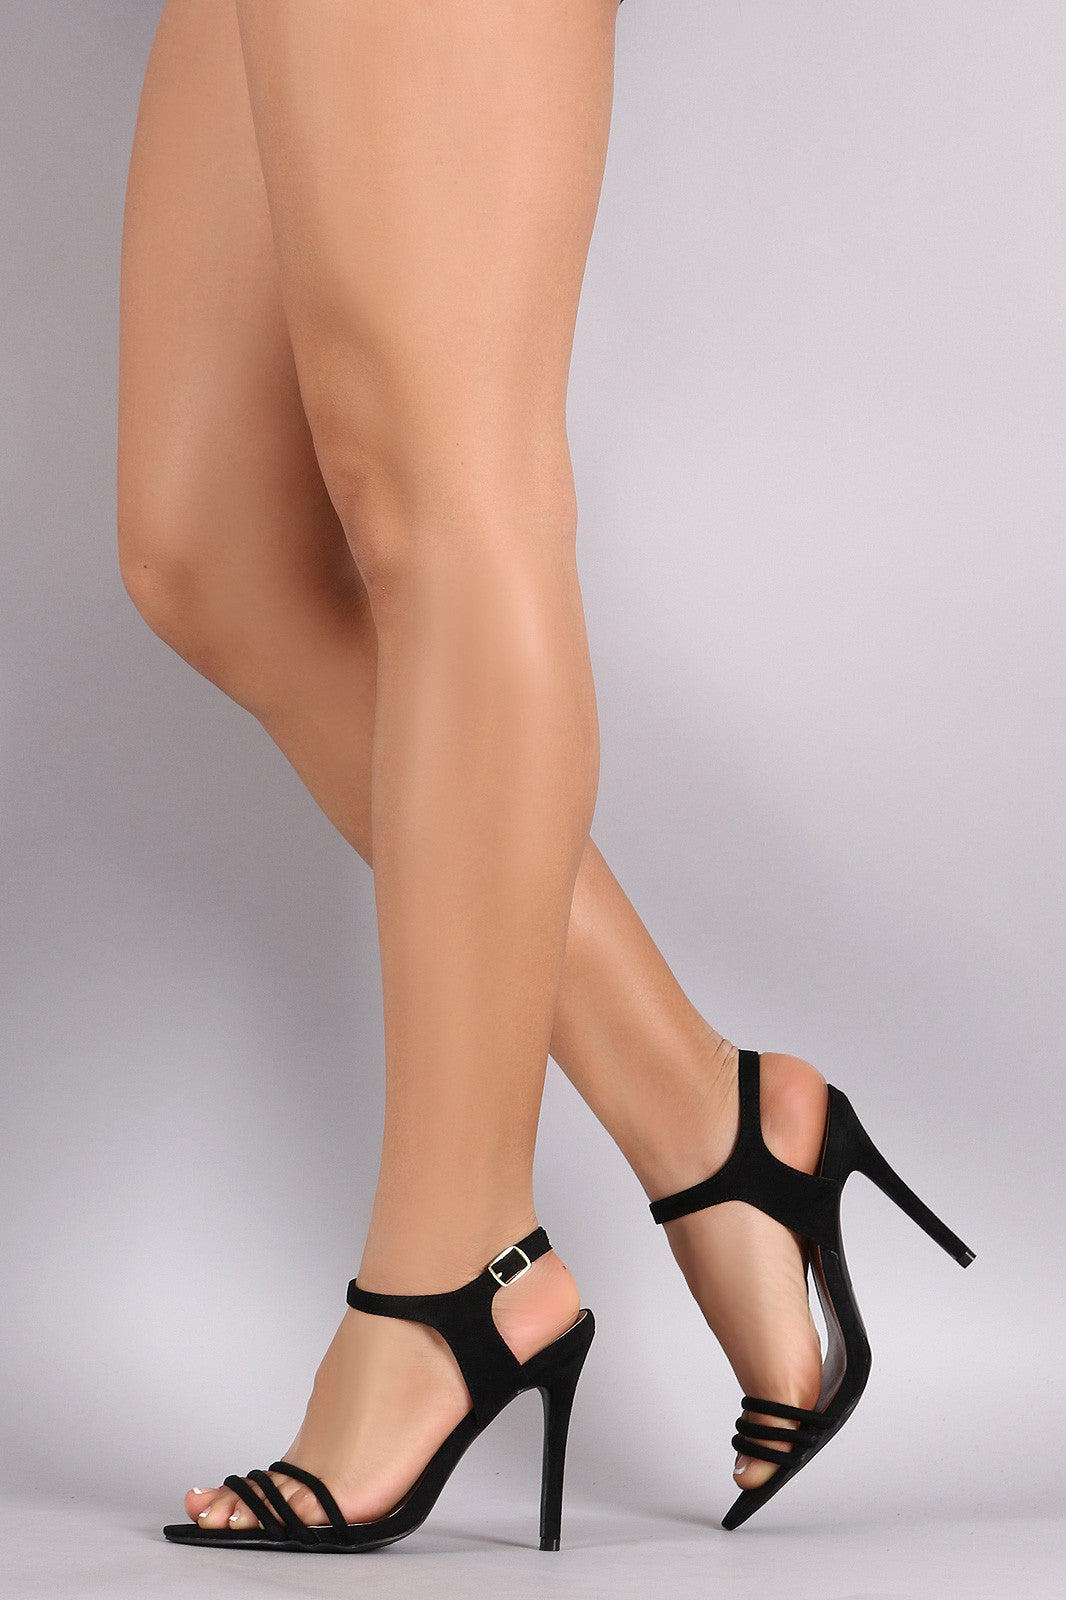 Qupid Suede Ankle Strap Sinlge Sole Heel - Thick 'N' Curvy Shop - 3